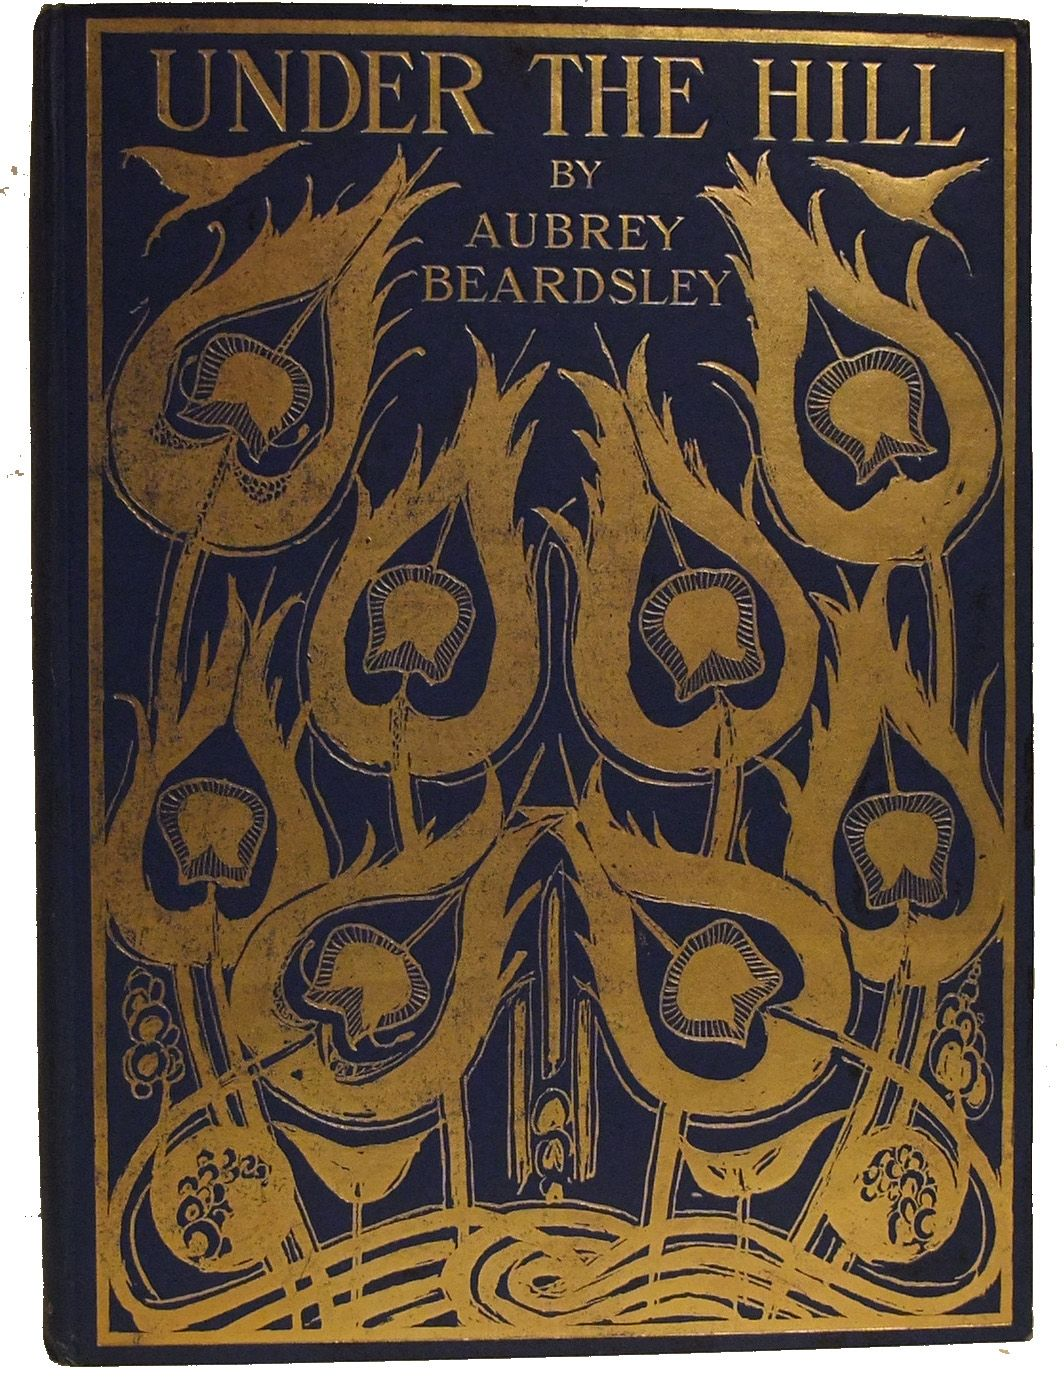 Love Aubrey Book Cover : Under the hill by aubrey beardsley for love of books